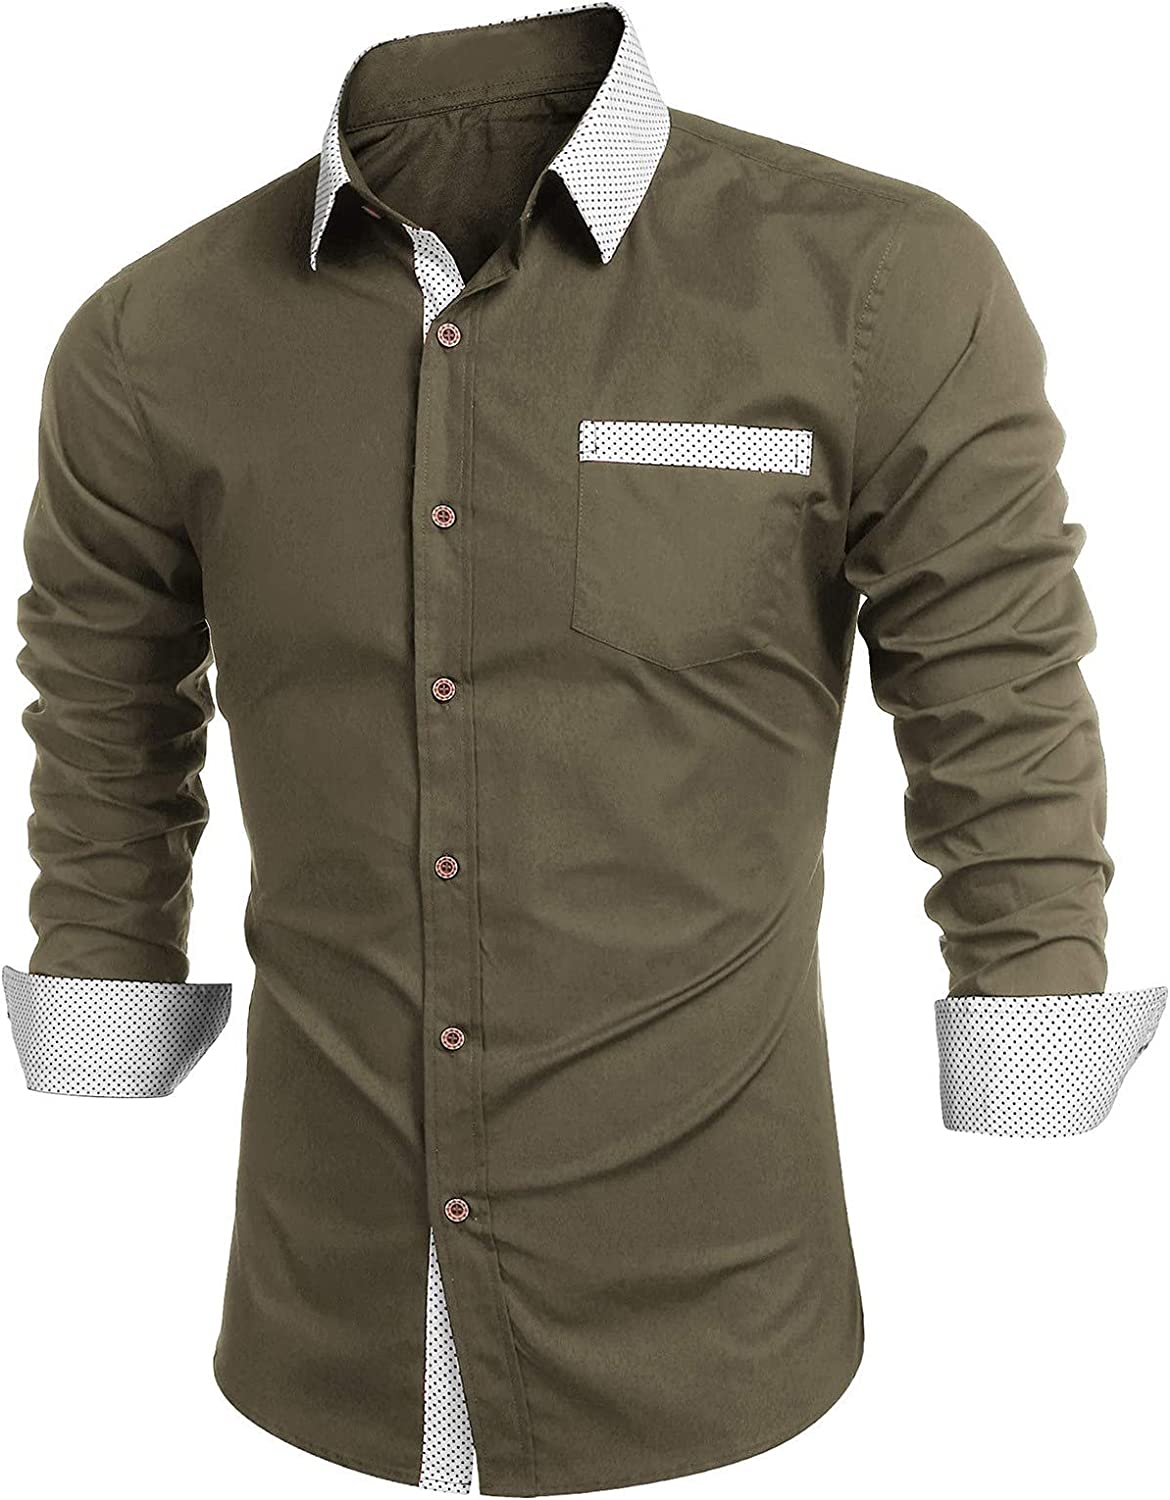 Men Long Sleeve Shirts Casual Solid Turn Down Collar Shirts Fashion Fitness Button Down Tops Business Shirts